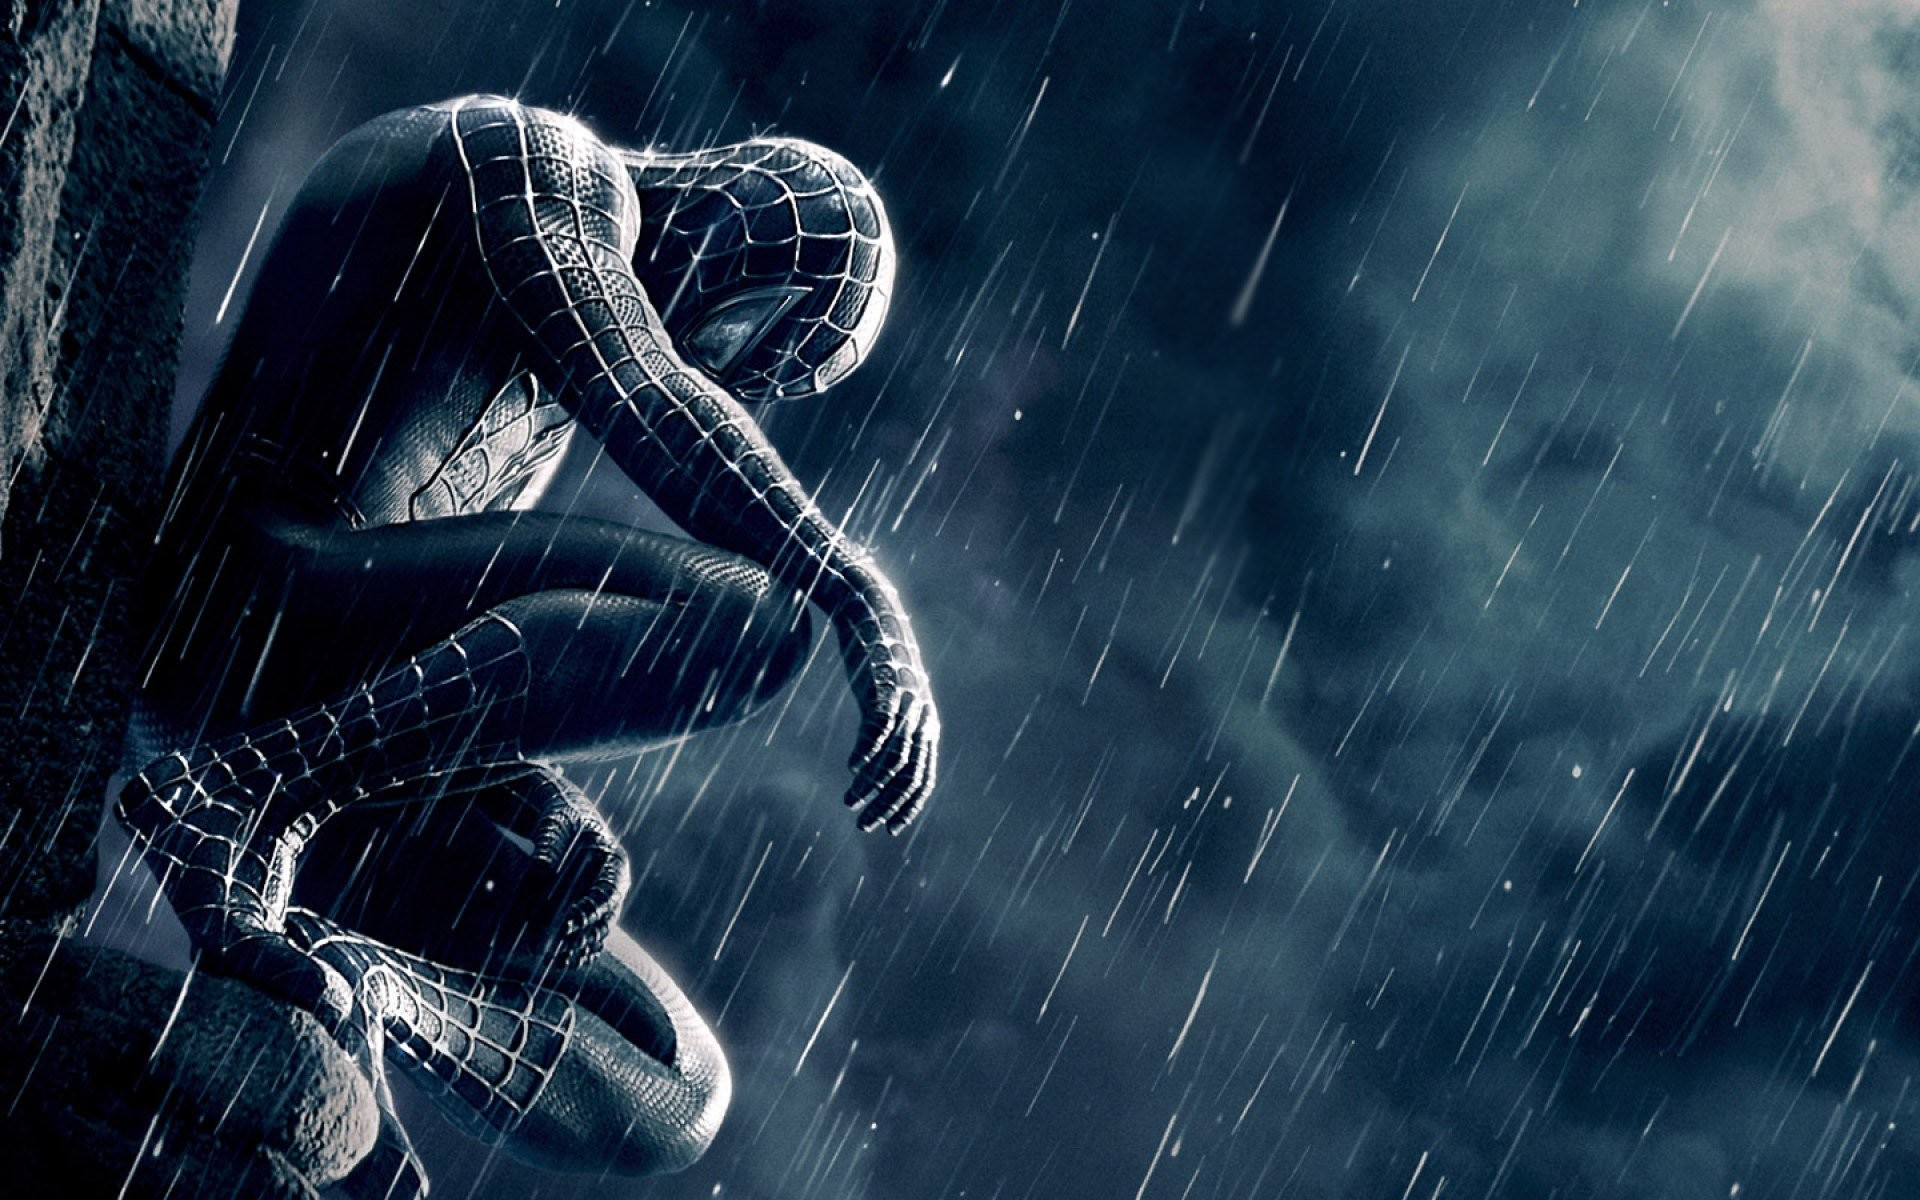 10 Top Spider Man 2099 Wallpaper Full Hd 1080p For Pc Desktop: Black Spider Man Wallpapers ·①